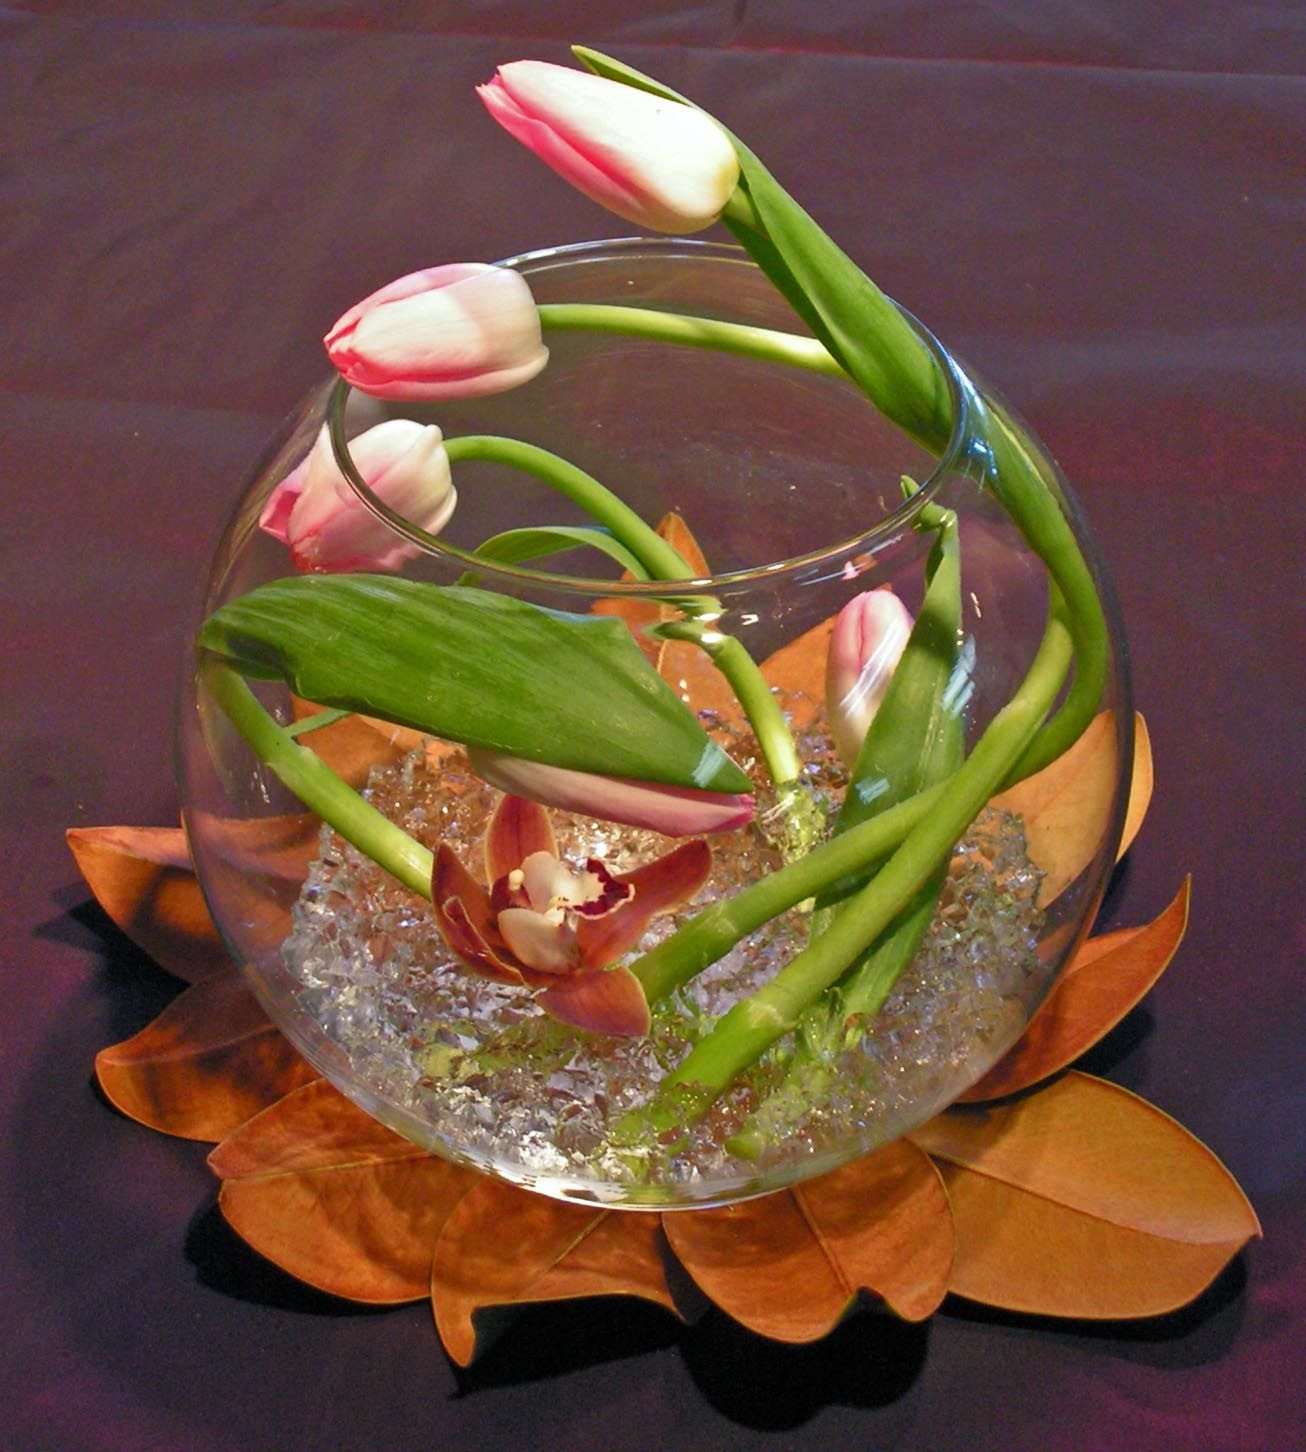 Do something different! - Tulips in a bubble bowl with magnolia leaves underneath the vase